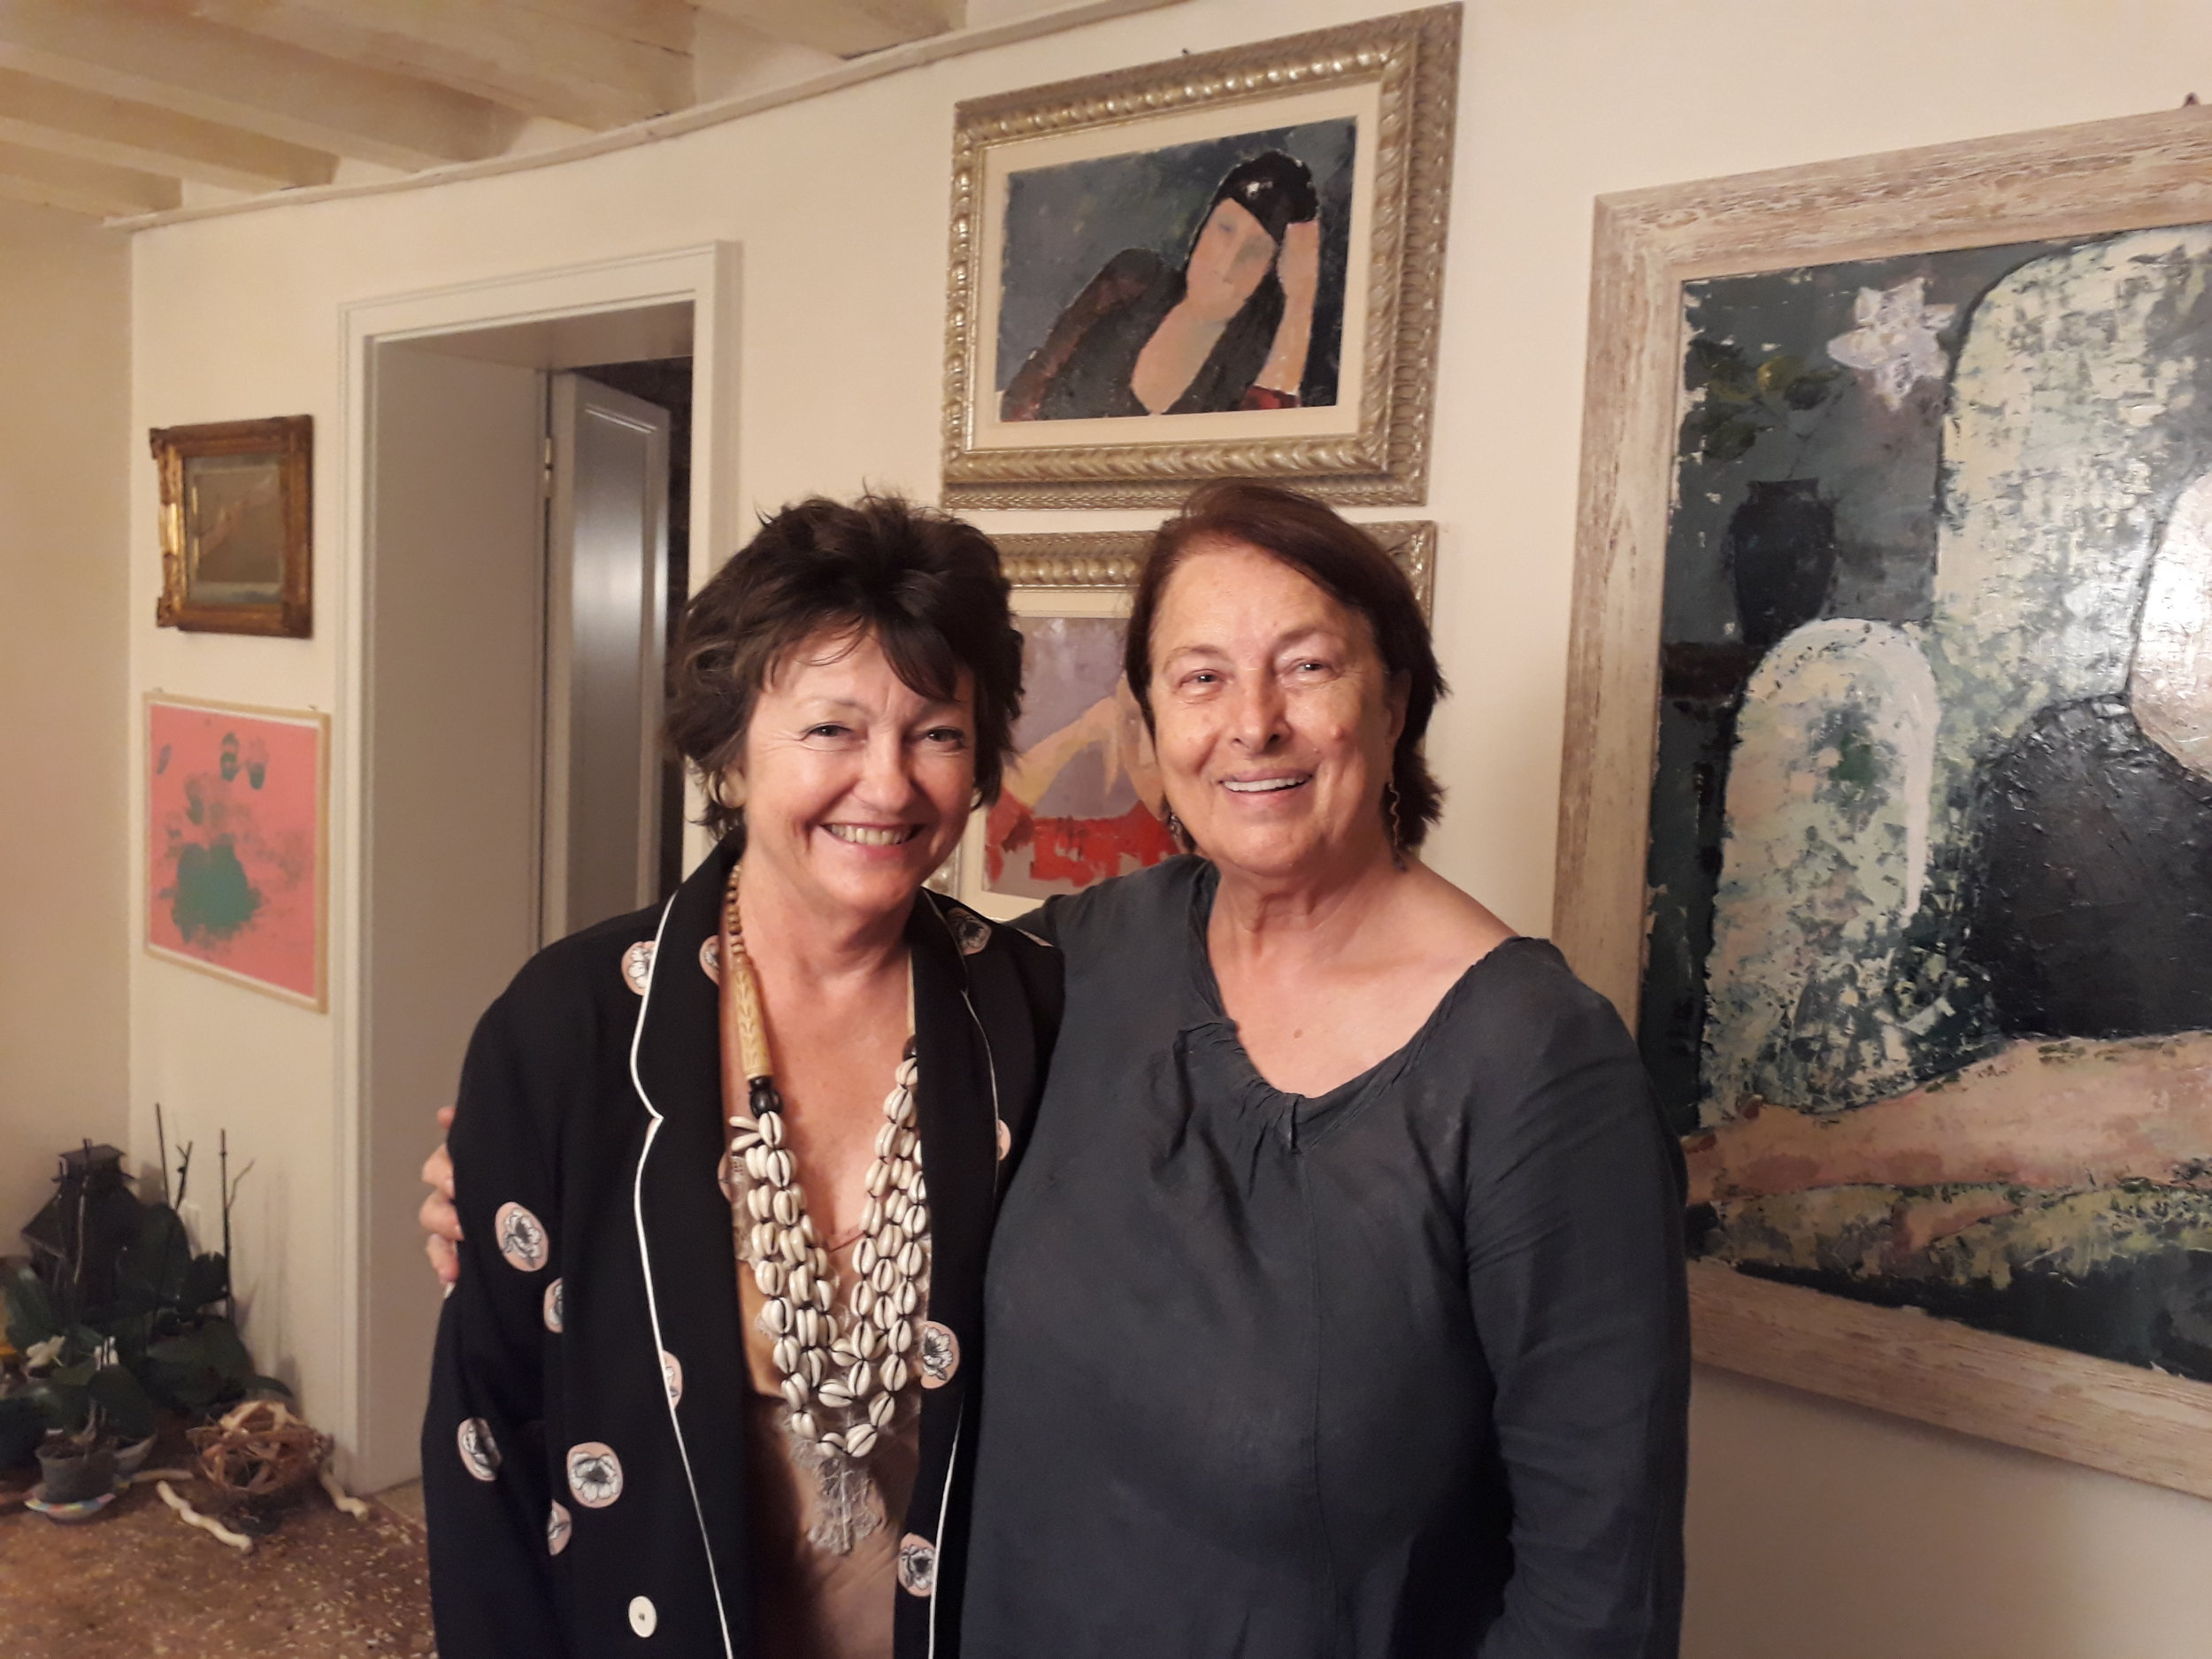 Susie Johns & Guiliana Grando, Venice 2018